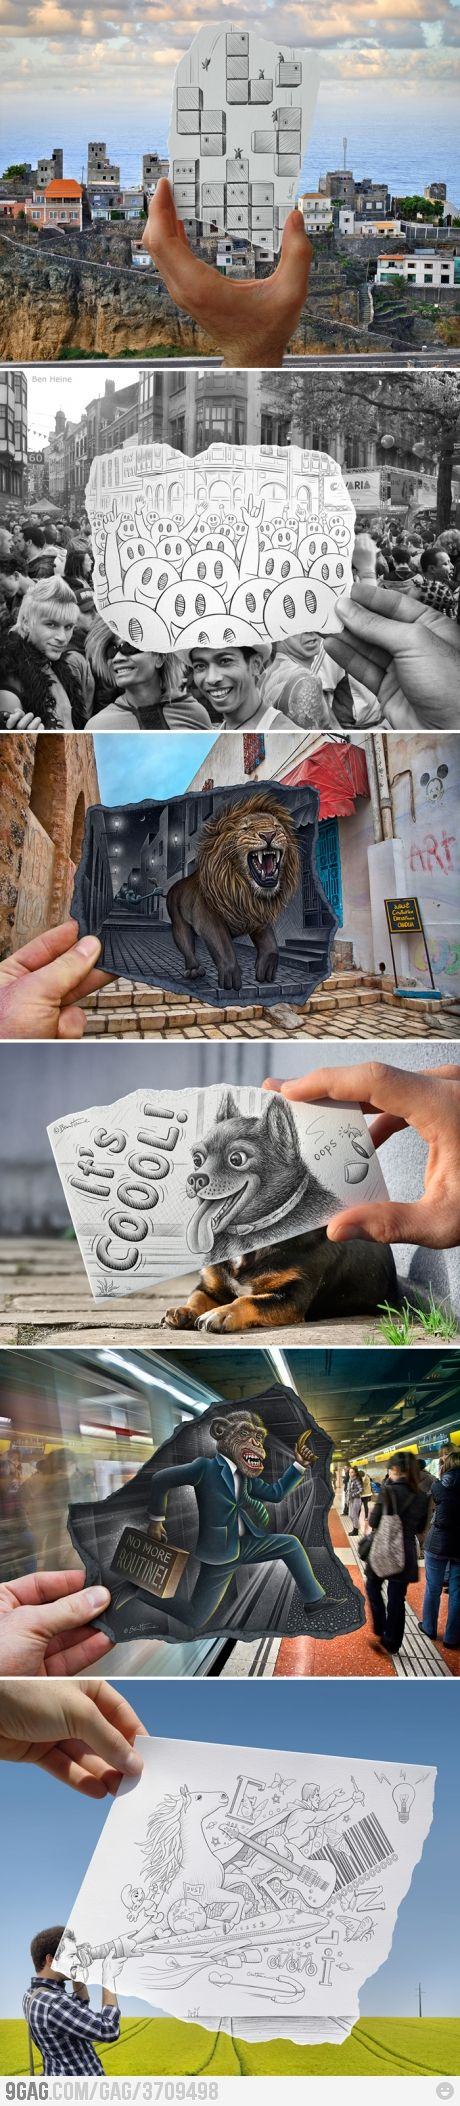 Pencil Vs Camera lvl: Ben Heine  this is so awesome